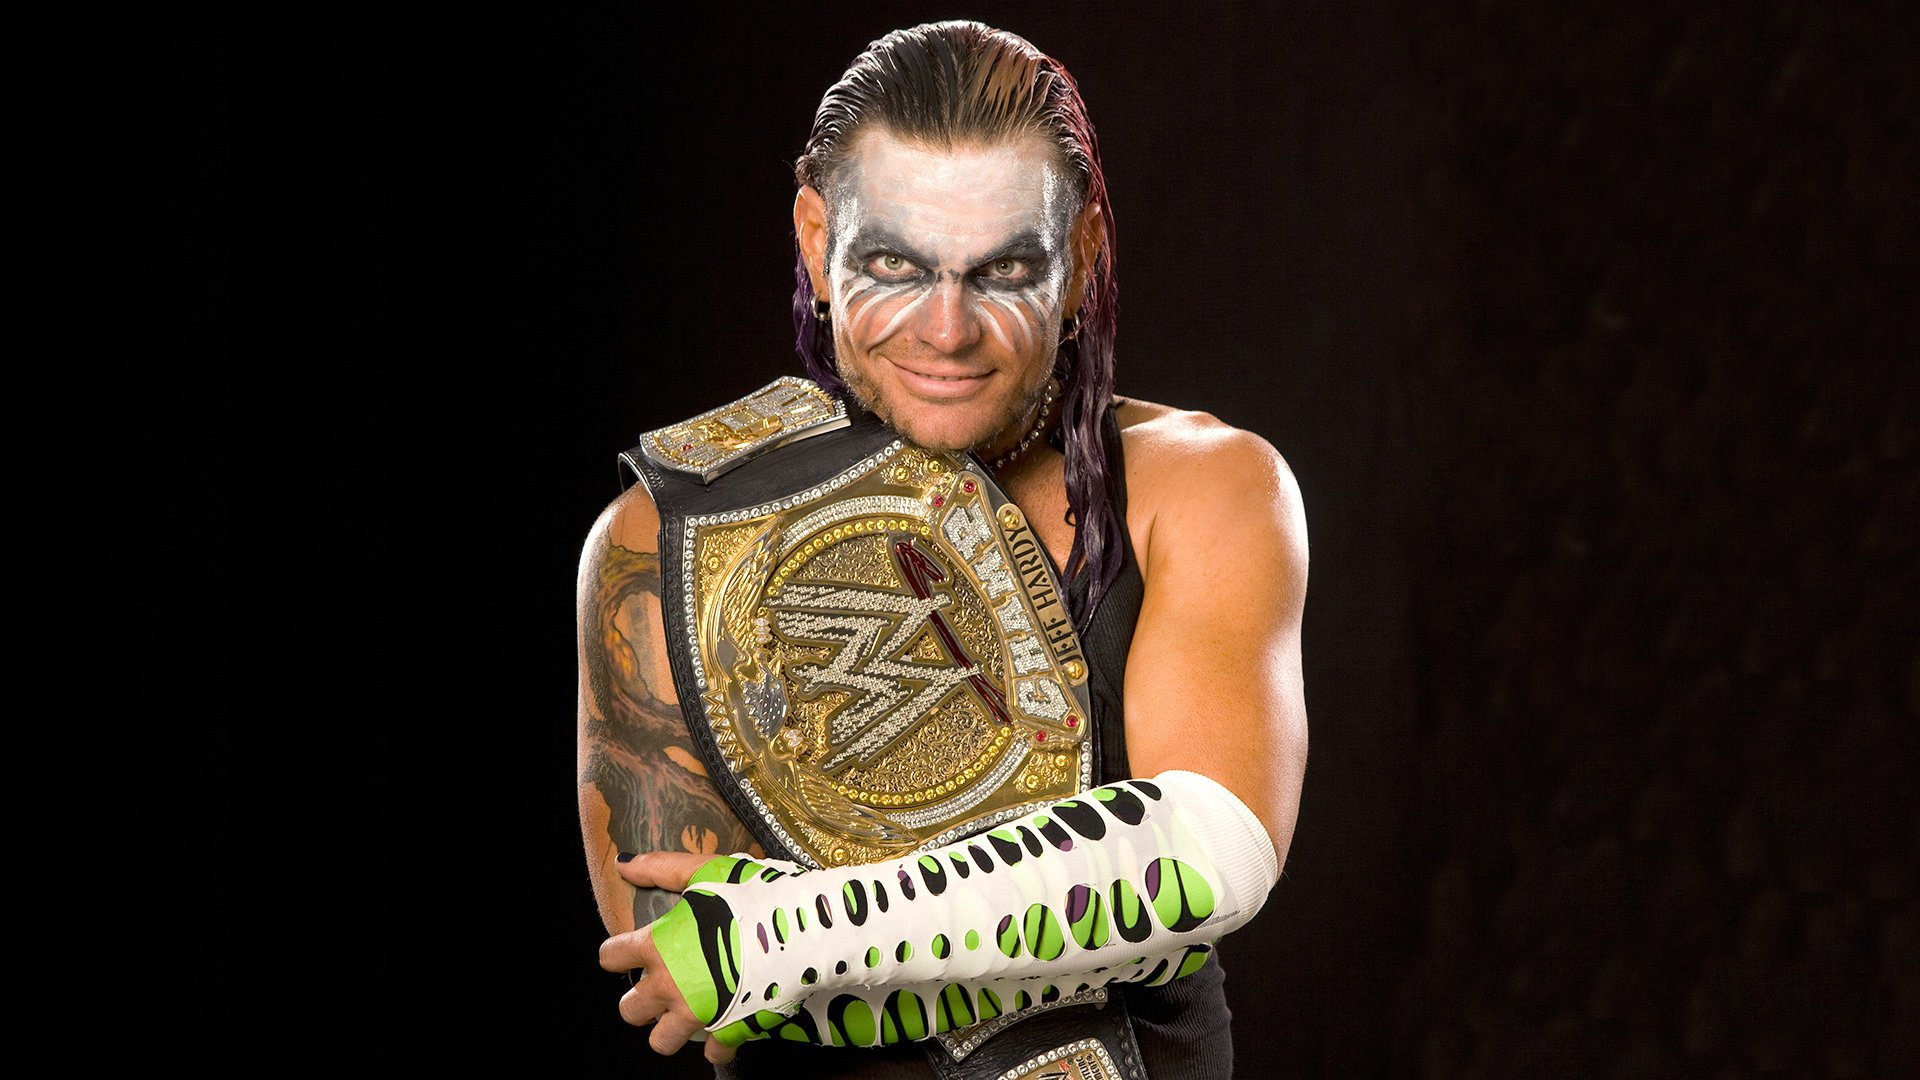 Jeff Hardy arrested for DUI, WWE statement